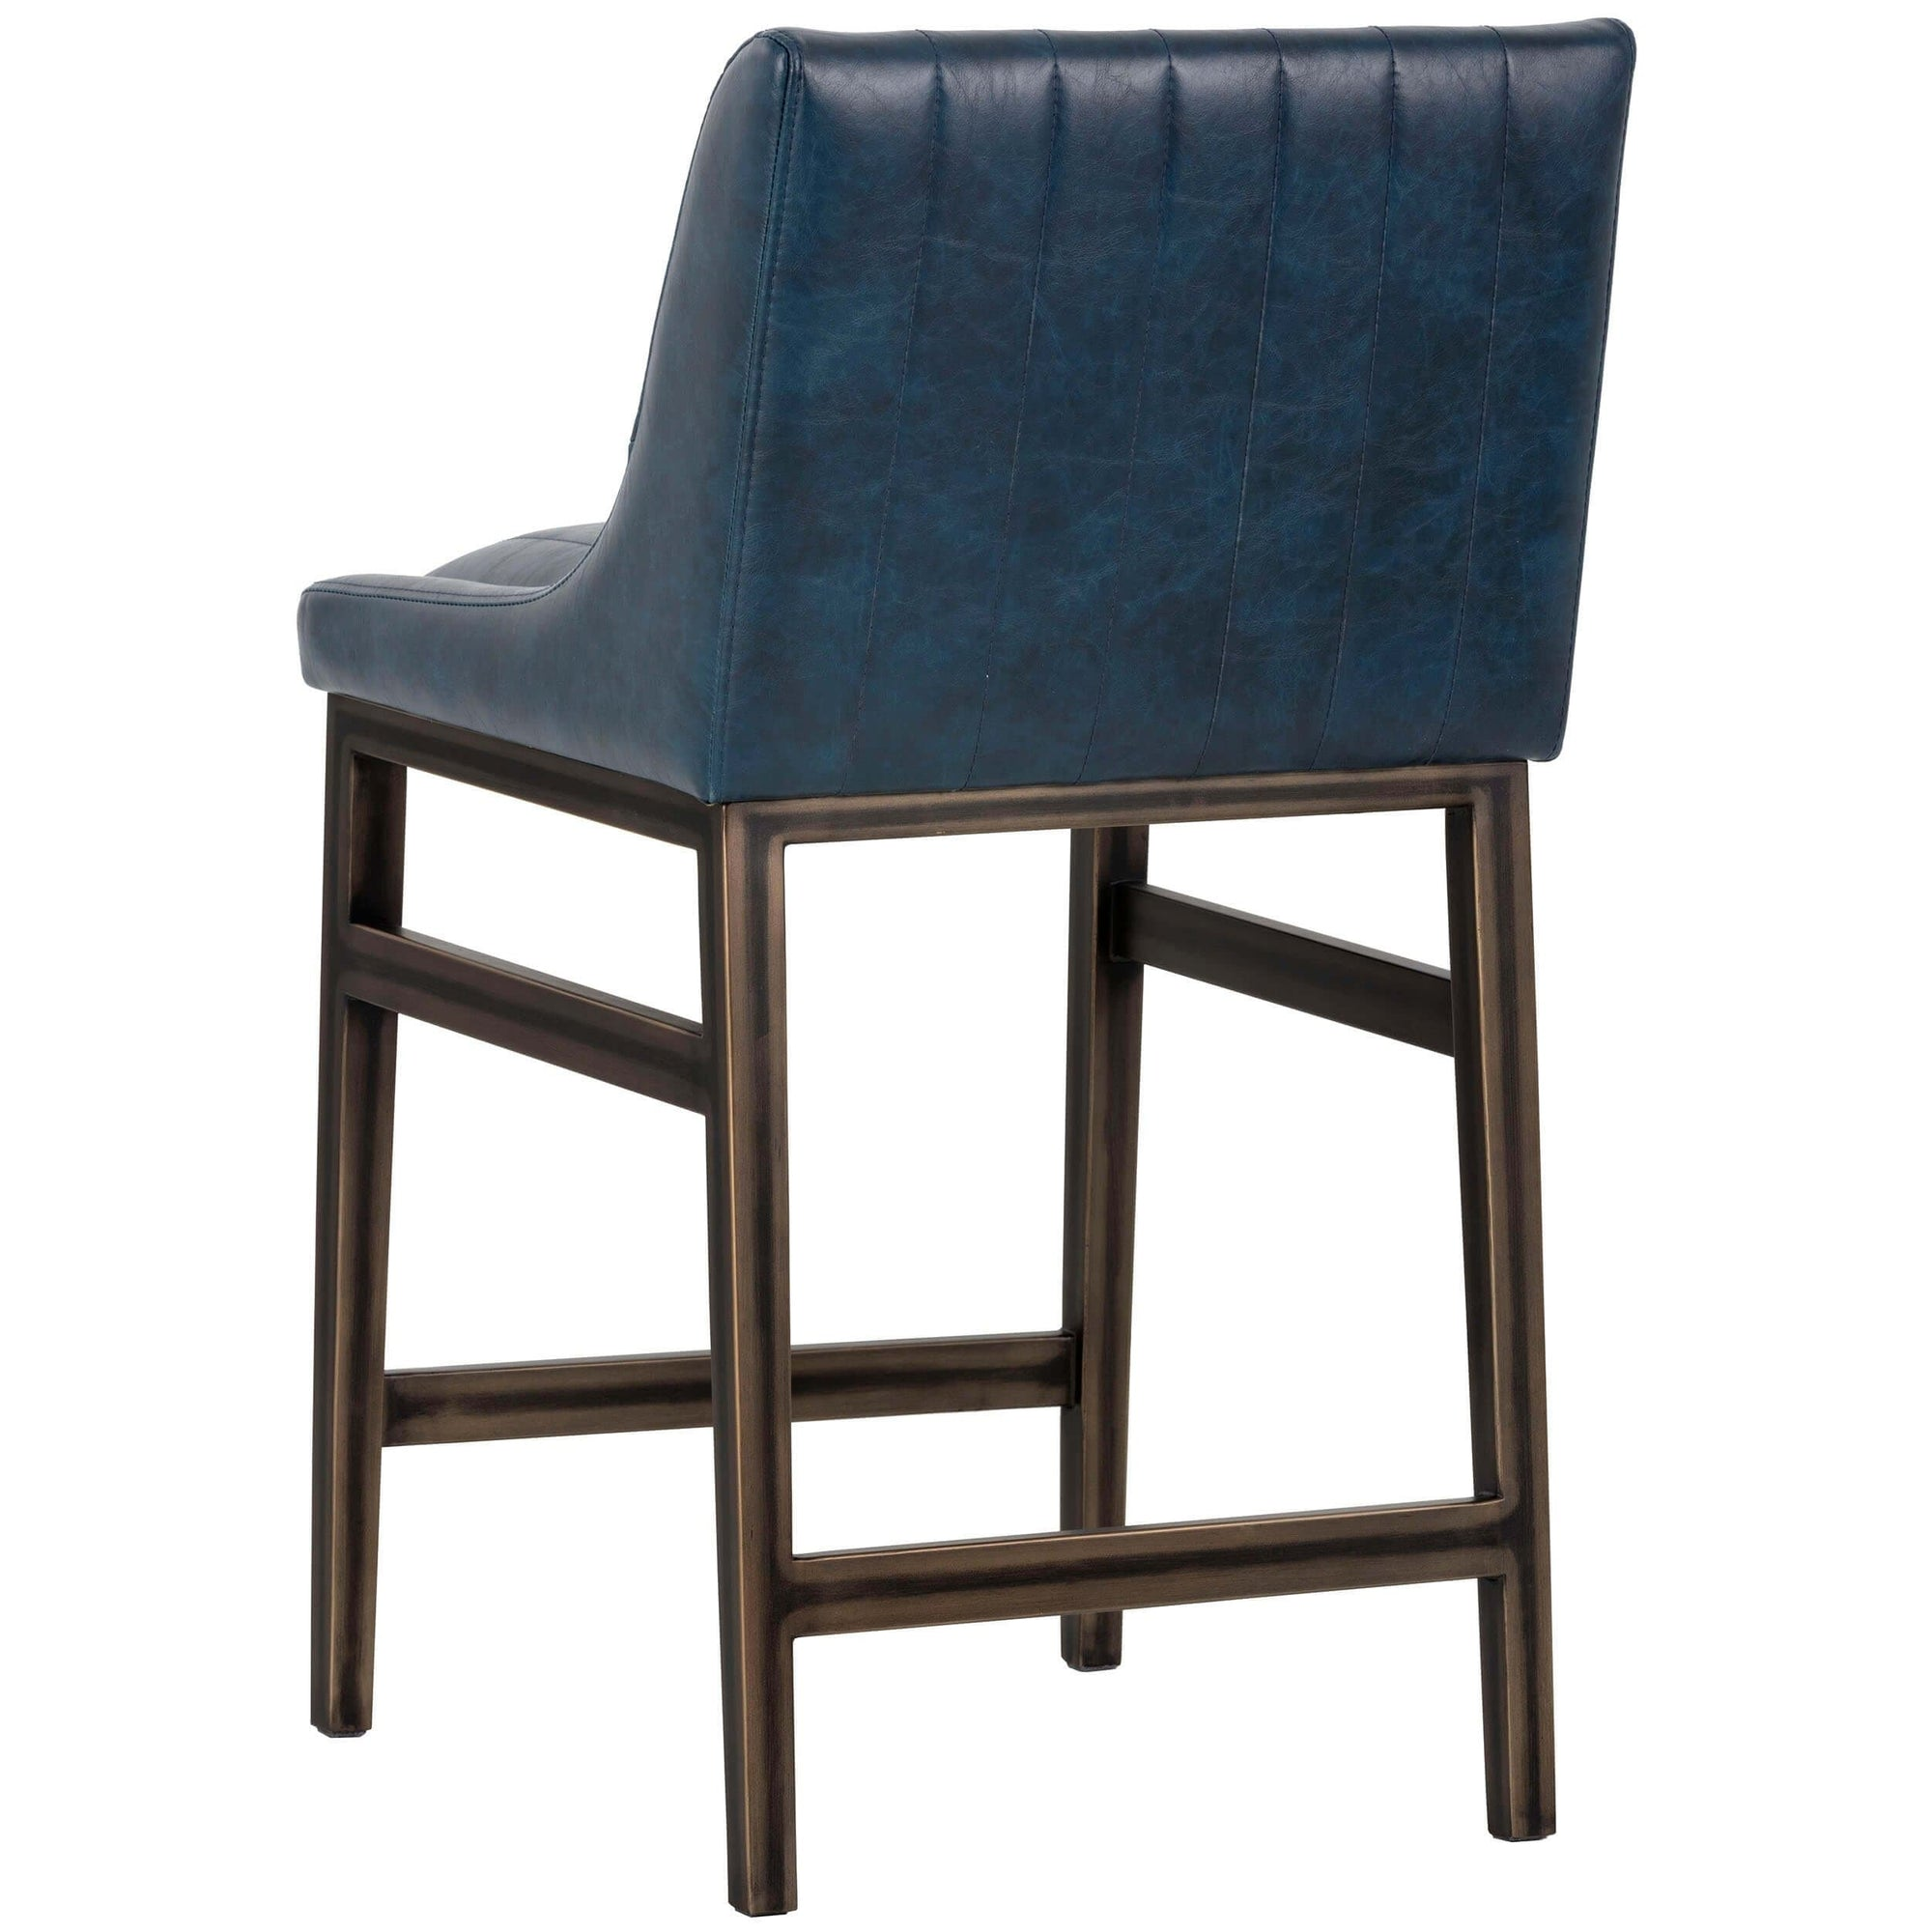 Superb Halden Counter Stool Vintage Blue High Fashion Home Spiritservingveterans Wood Chair Design Ideas Spiritservingveteransorg